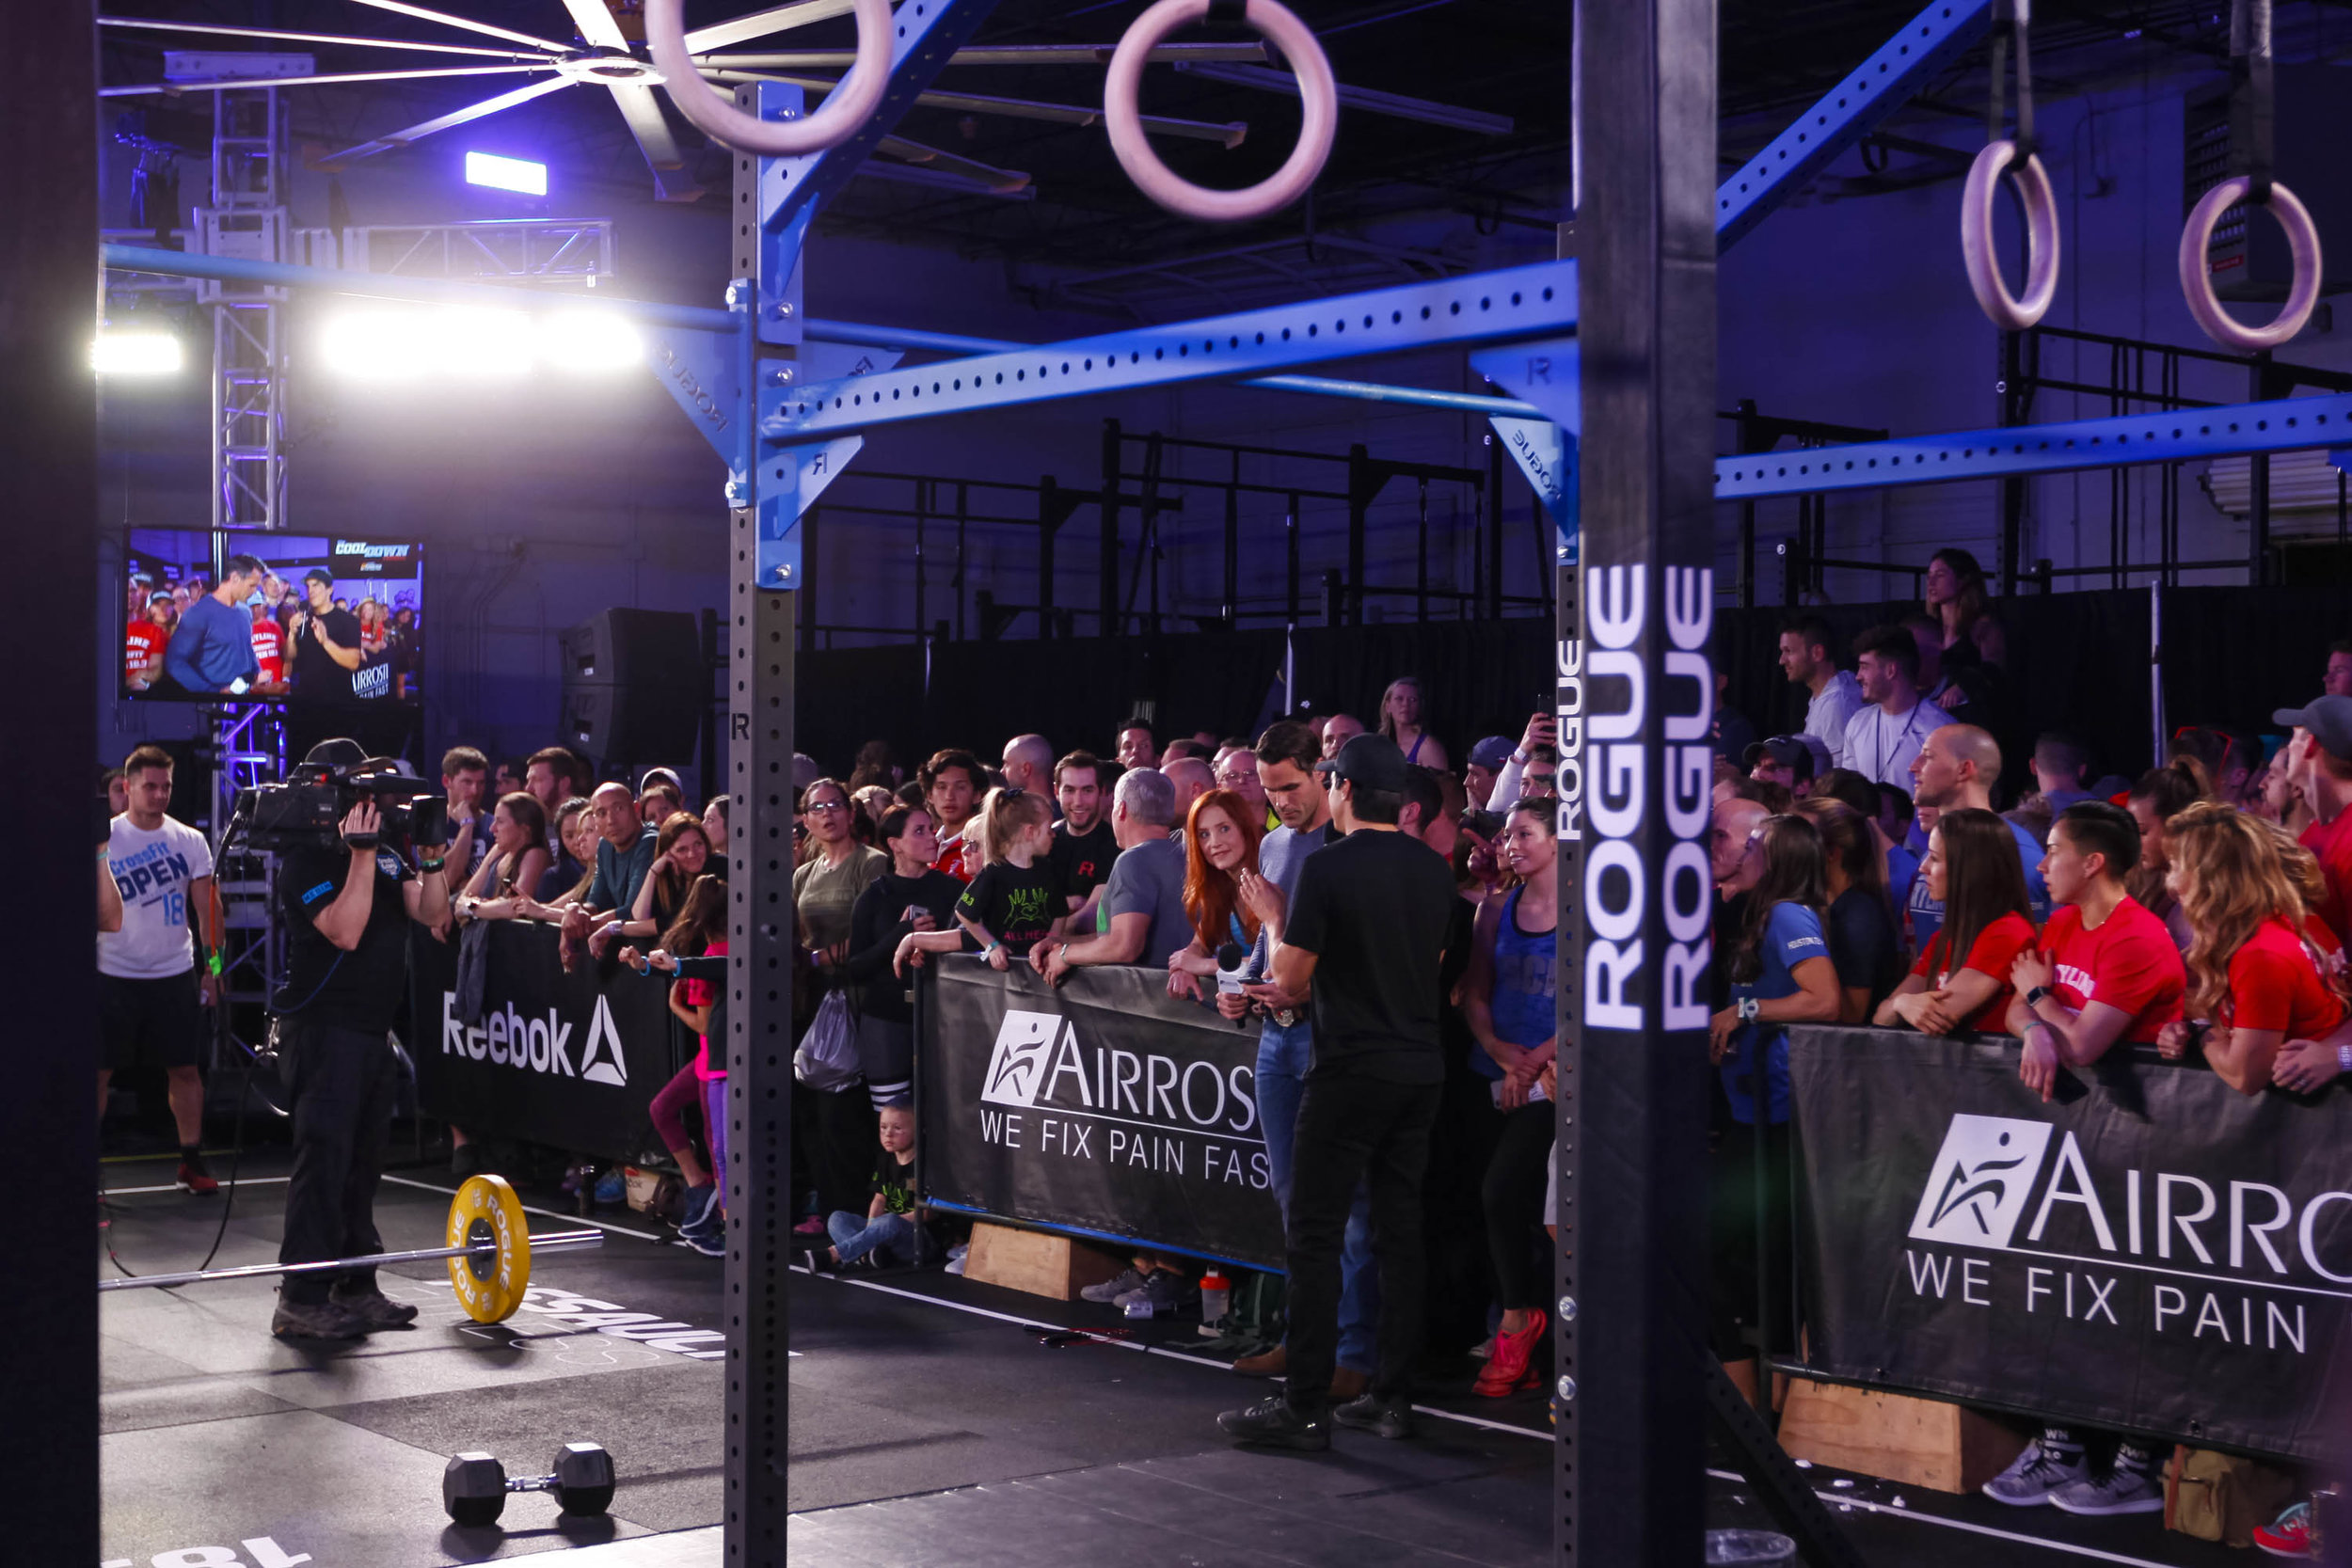 Lyndsay and Amber undressing Dave Castro with their eyes during the CrossFit Games 18.3 live announcement.